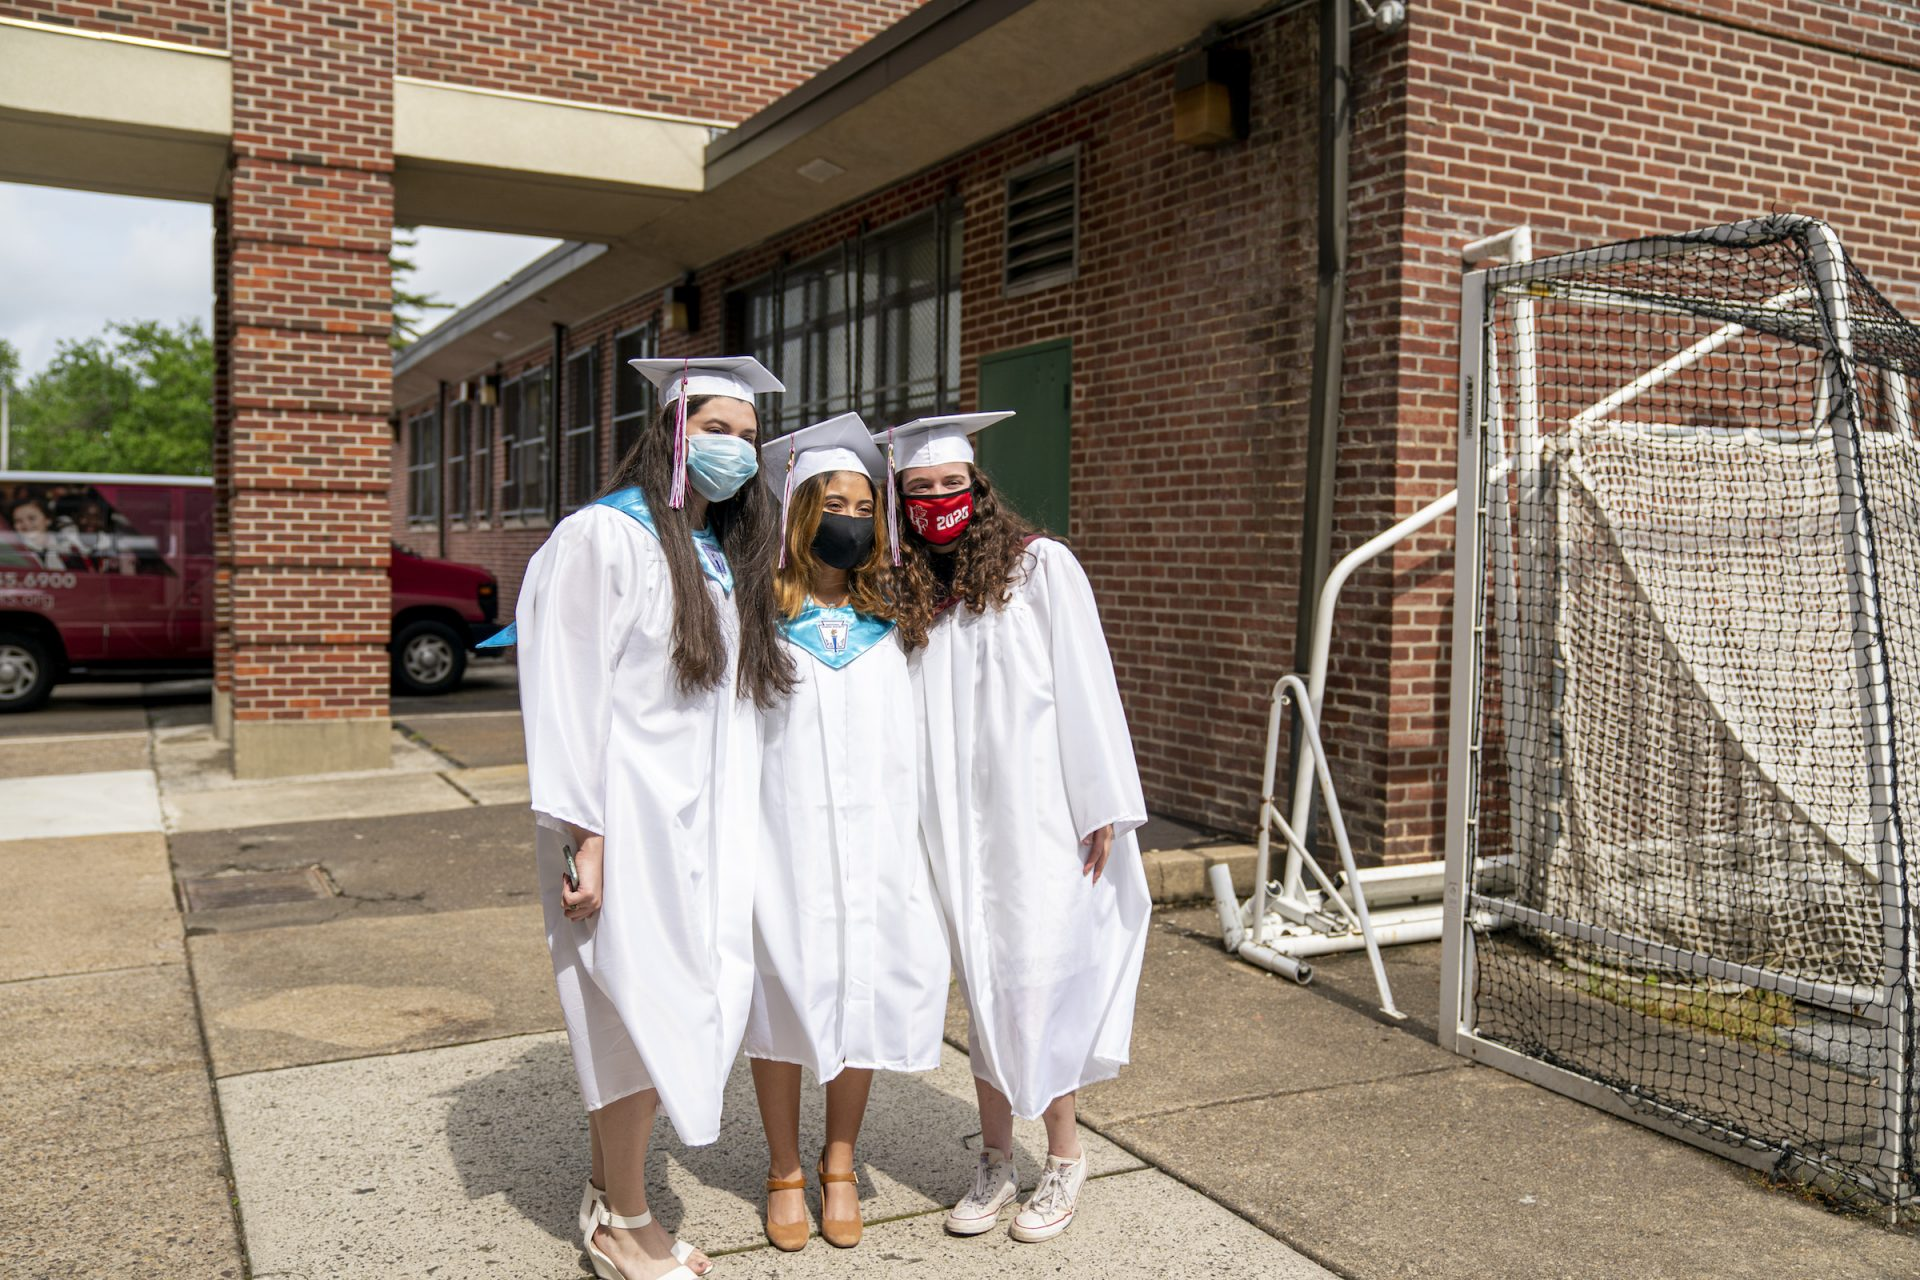 Ashley with friends on graduation day at Little Flower Catholic School for Girls in Hunting Park.